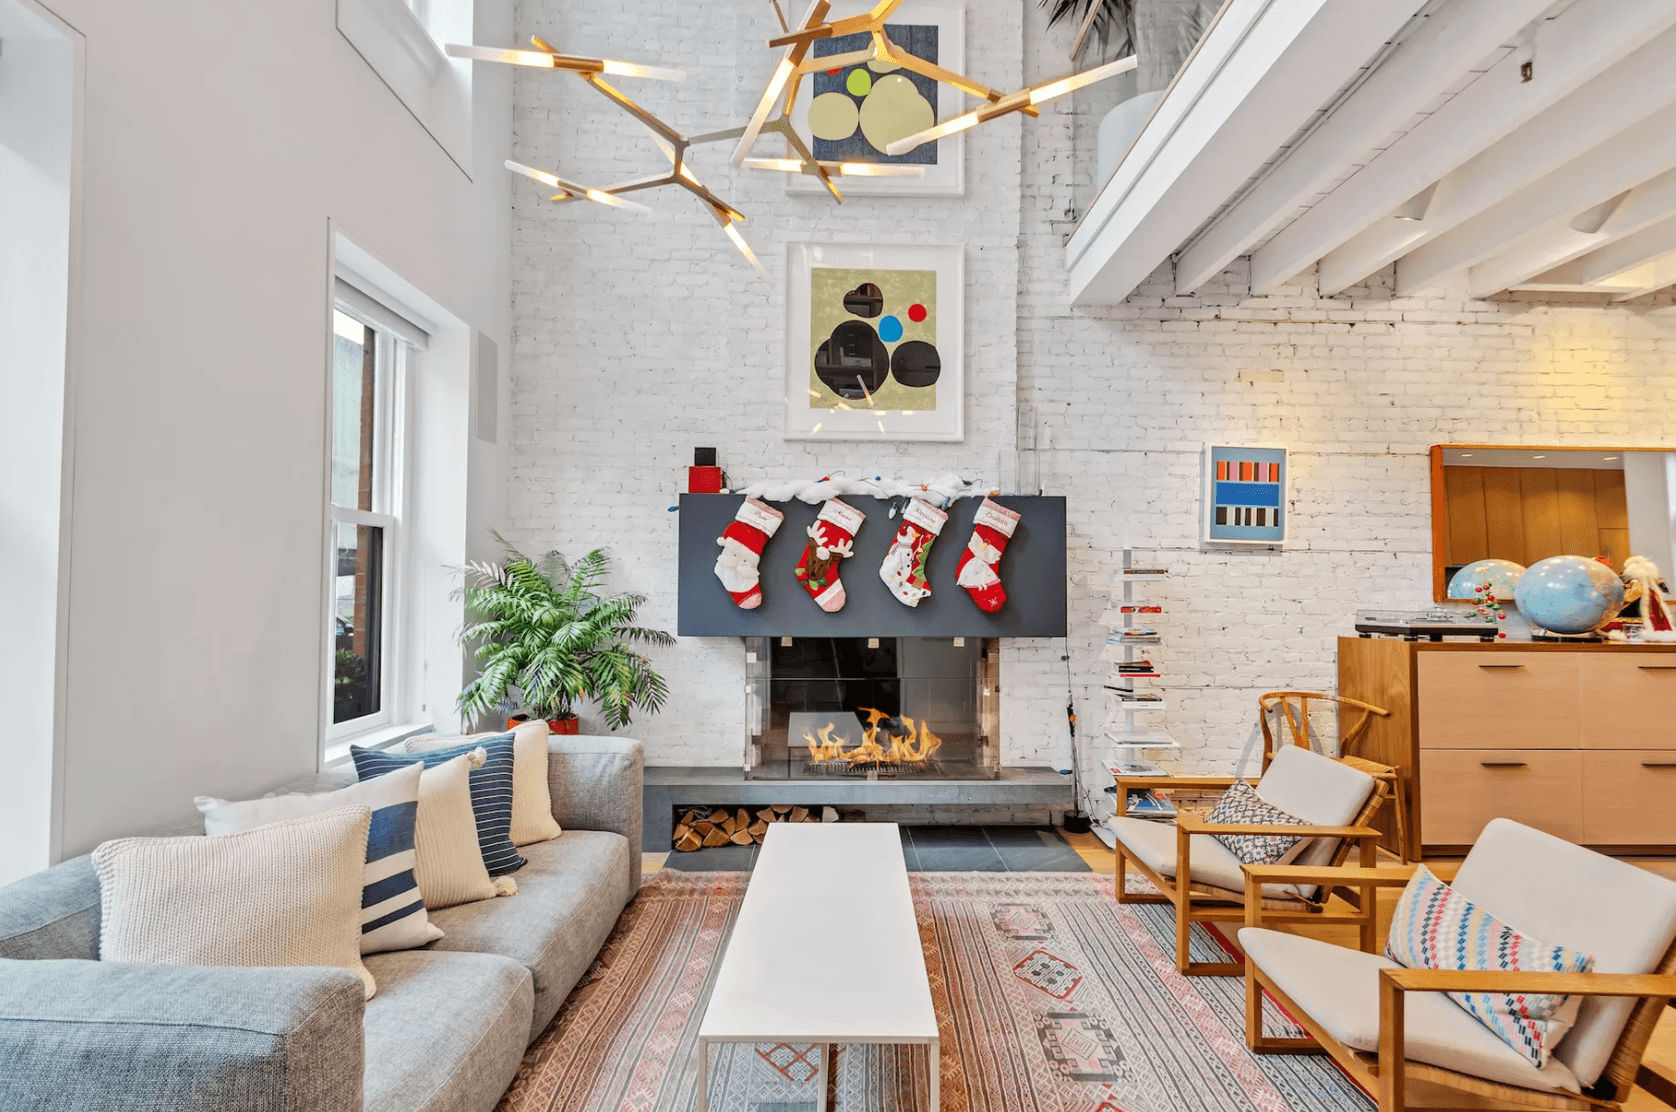 6sqft nyc real estate and architecture news